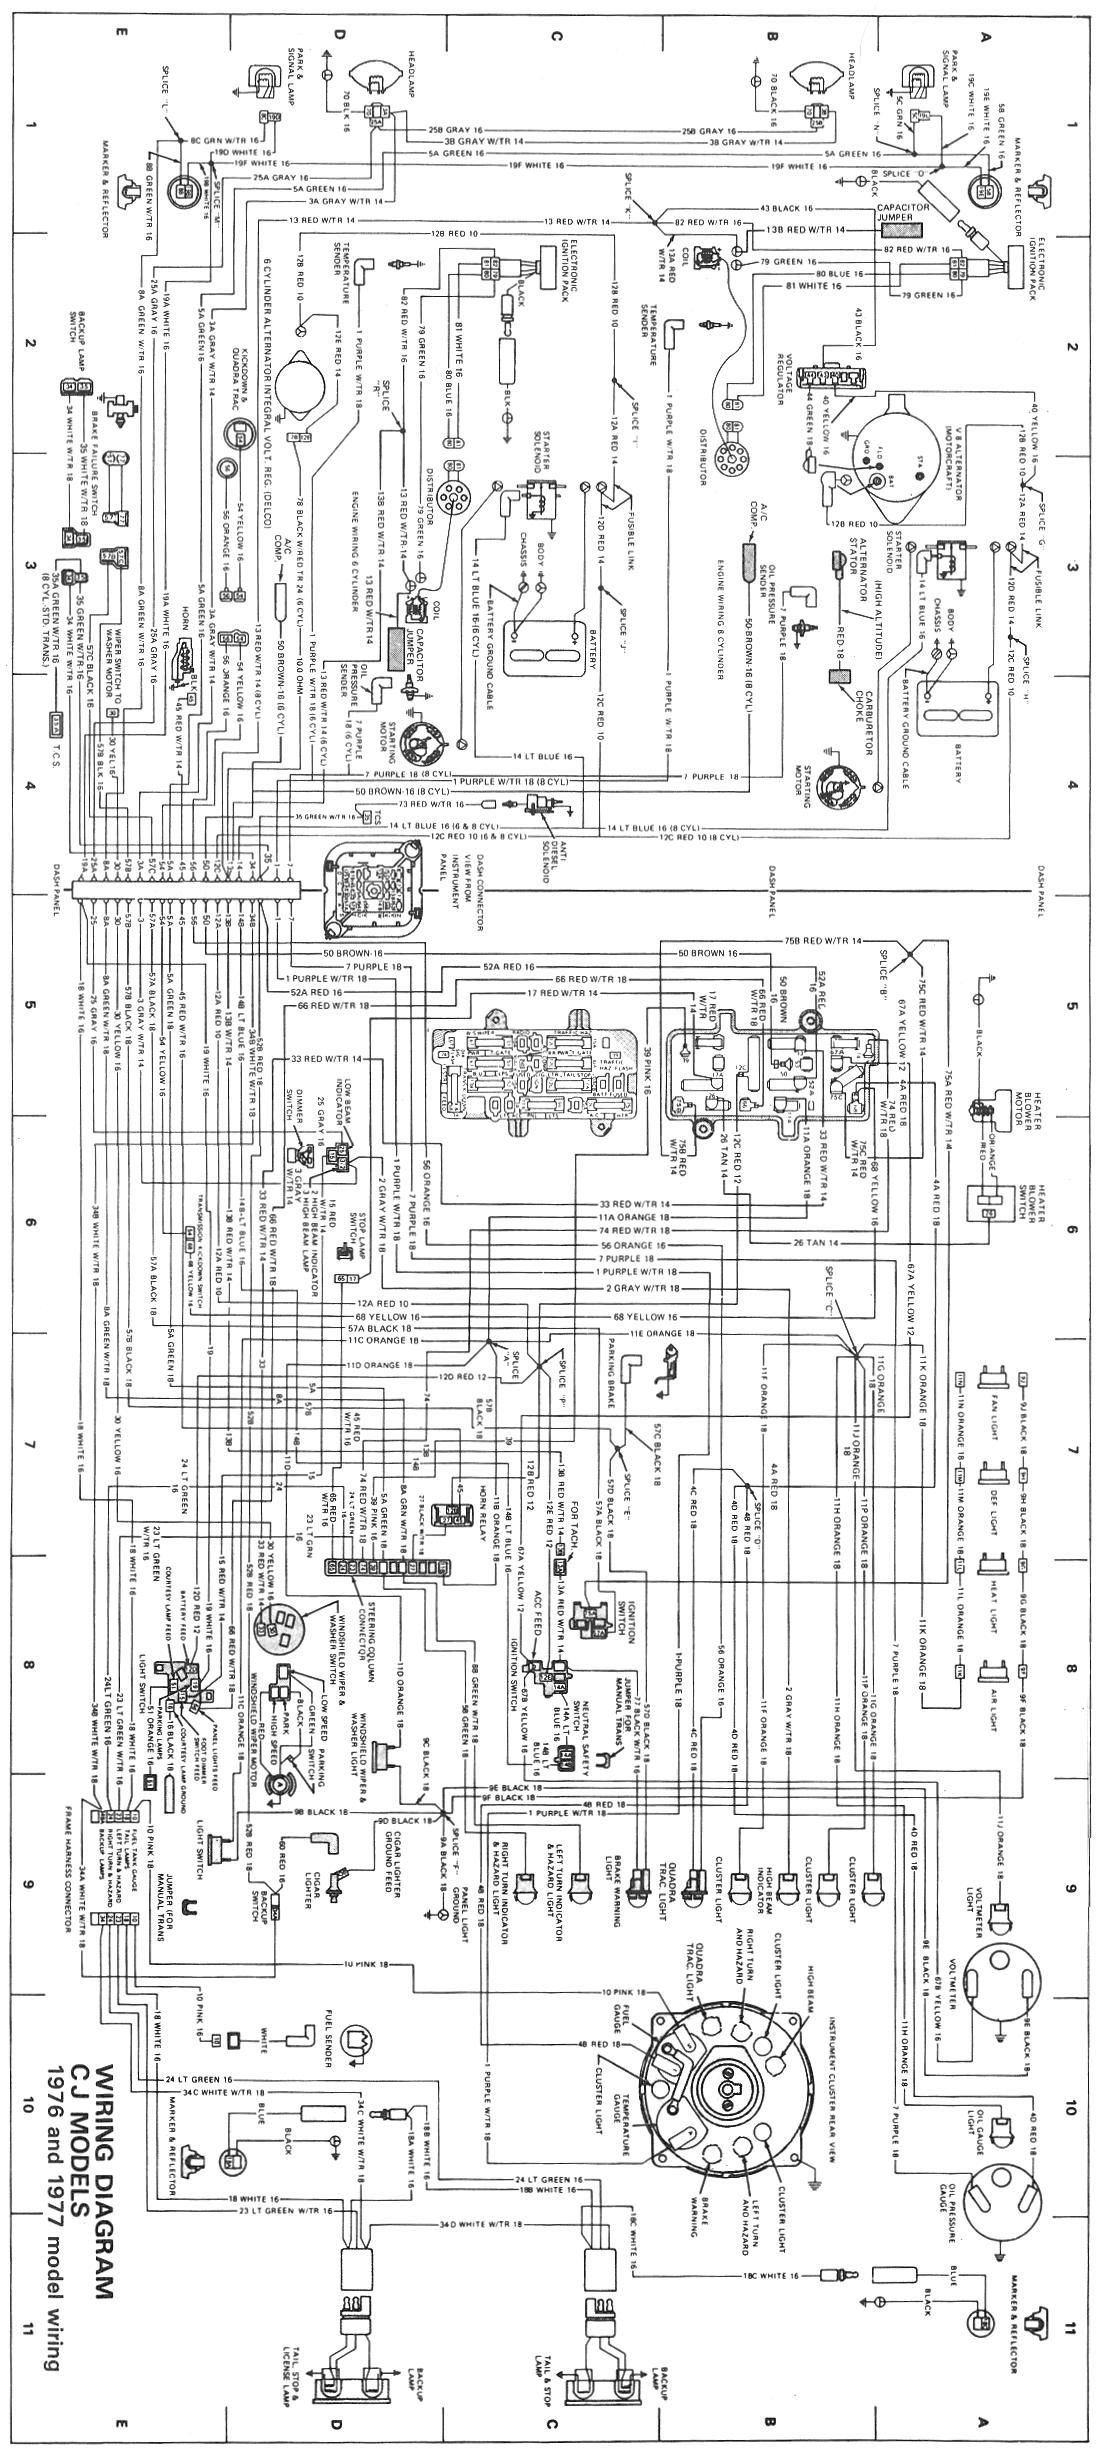 8d25ded6e3673519e155875e09844e5e cj wiring diagram 1976 1977 jpg 1,100�2,459 pixels 1976 jeep cj5 Chevy Wiring Harness Diagram at creativeand.co